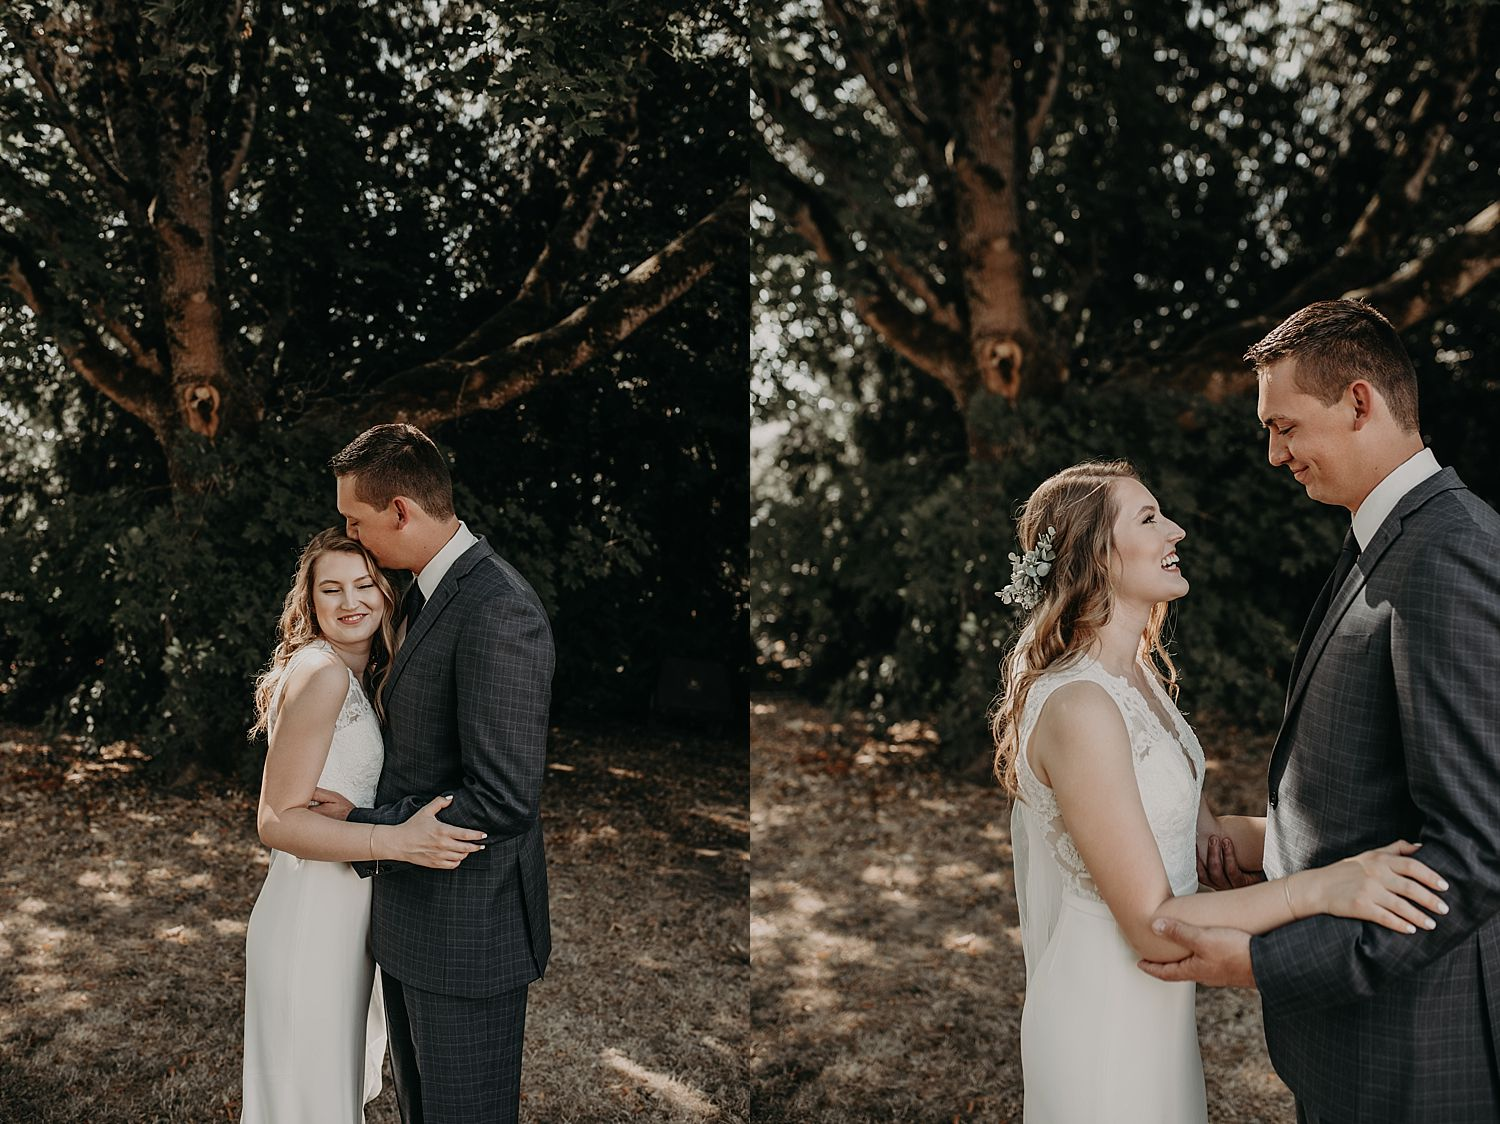 Kayla_Josh_Oregon_Wedding_July29_2018_0151.jpg